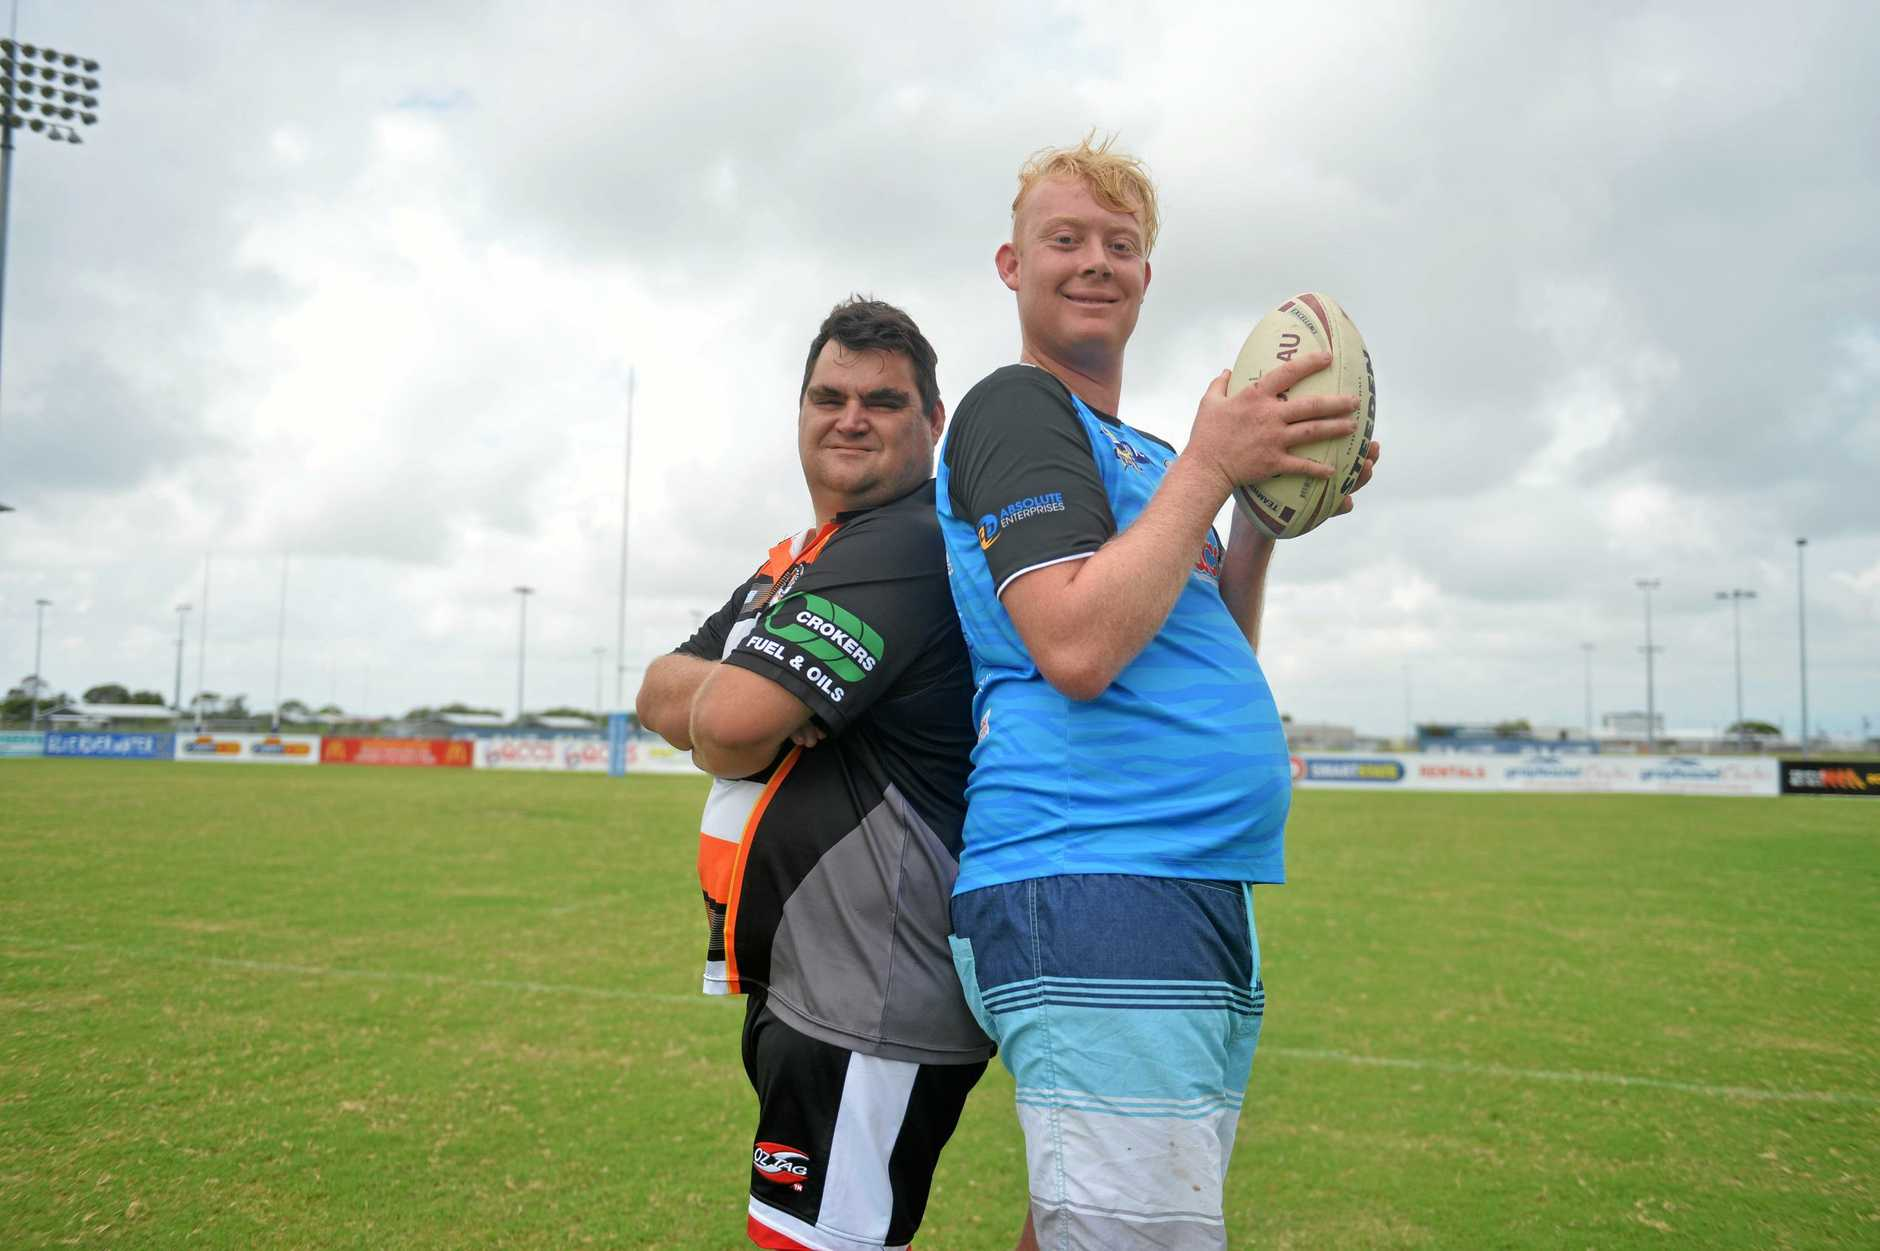 Players for the Mackay all abilities rugby league competition. Daniel Payne (left) for Norths Devils and Mitchell Vella from Wests Tigers.